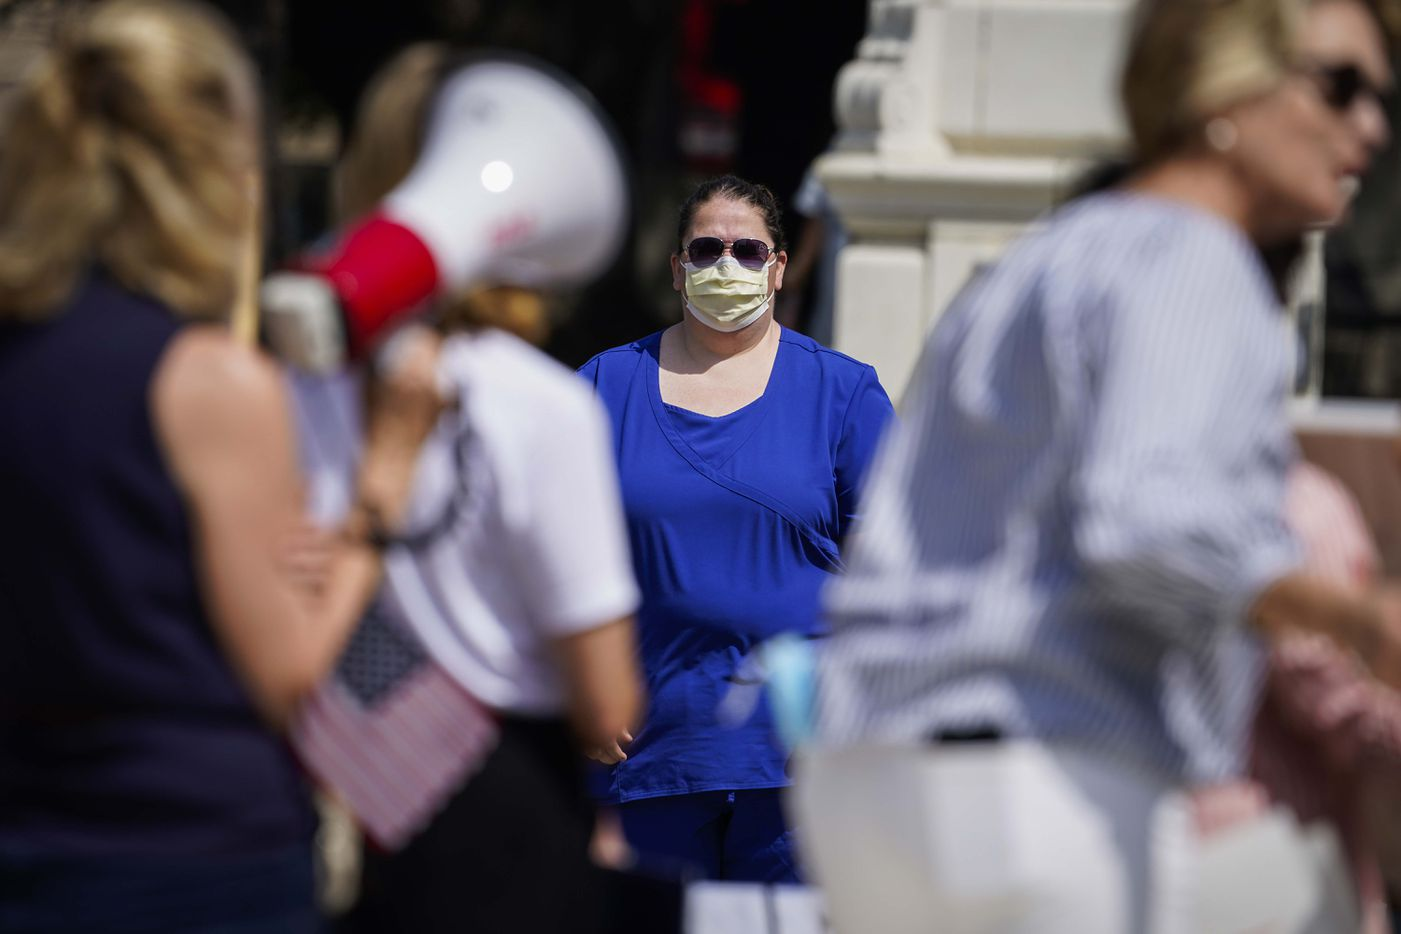 A medical worker who came to show support for social distancing measures stands across the street as protesters rally against government stay-at-home orders at Dealey Plaza on Tuesday, April 21, 2020, in Dallas.